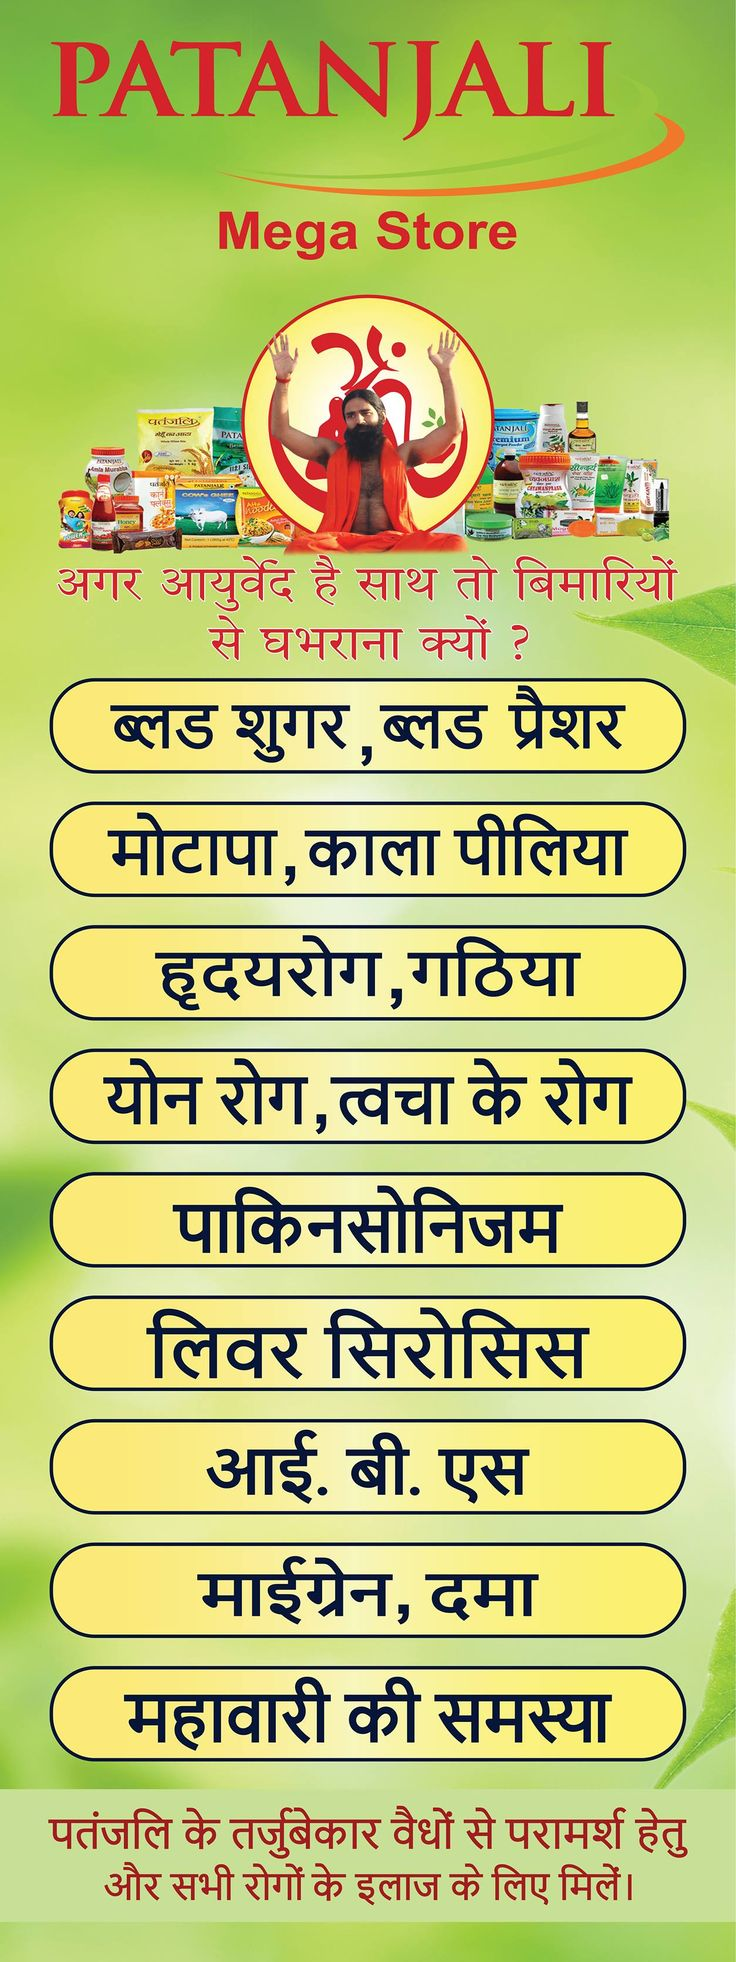 Patanjali Board Design Template for restaurants, hotels and other eating areas Natural and Ayurveda Products  #seddni, #seddnidesigns, #arts, #design, #restaurant, #food & drinks, #Abstact, #Banner, #Promotional, #Advertisements, #patanjali, #natural, #herbal, #products  Download Are Free Designs Only on  Freepik: https://www.freepik.com/seddni